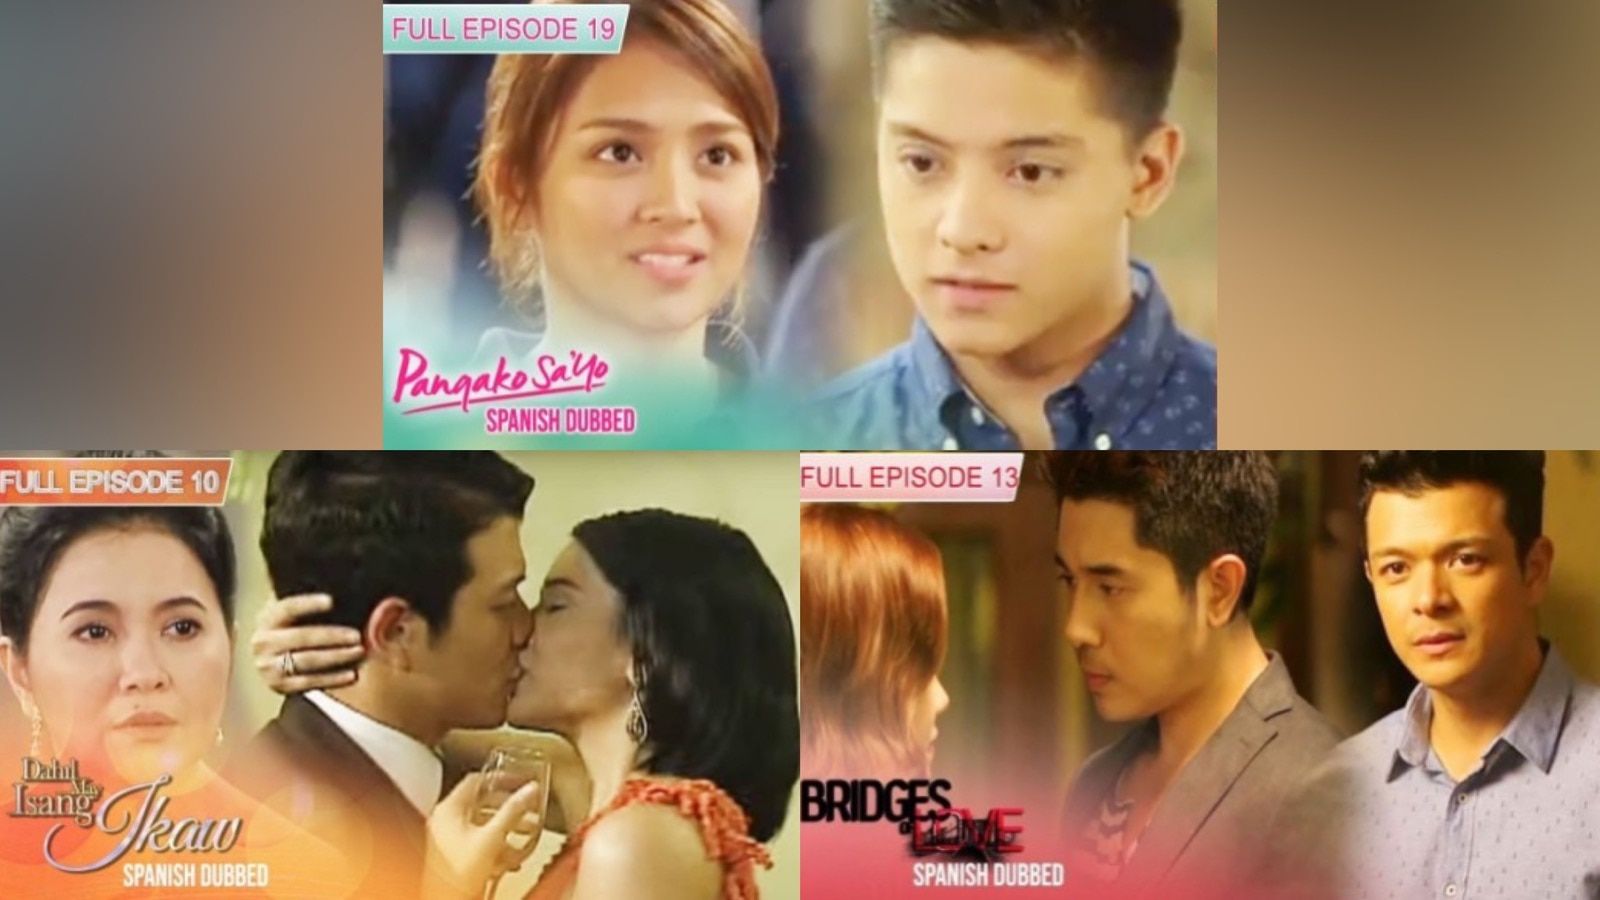 Spanish-dubbed Filipino teleseryes Pangako Sa 'Yo, Dahil May Isang Ikaw, & Bridges of Love now available on ABS-CBN Entertainment Channel on YouTube